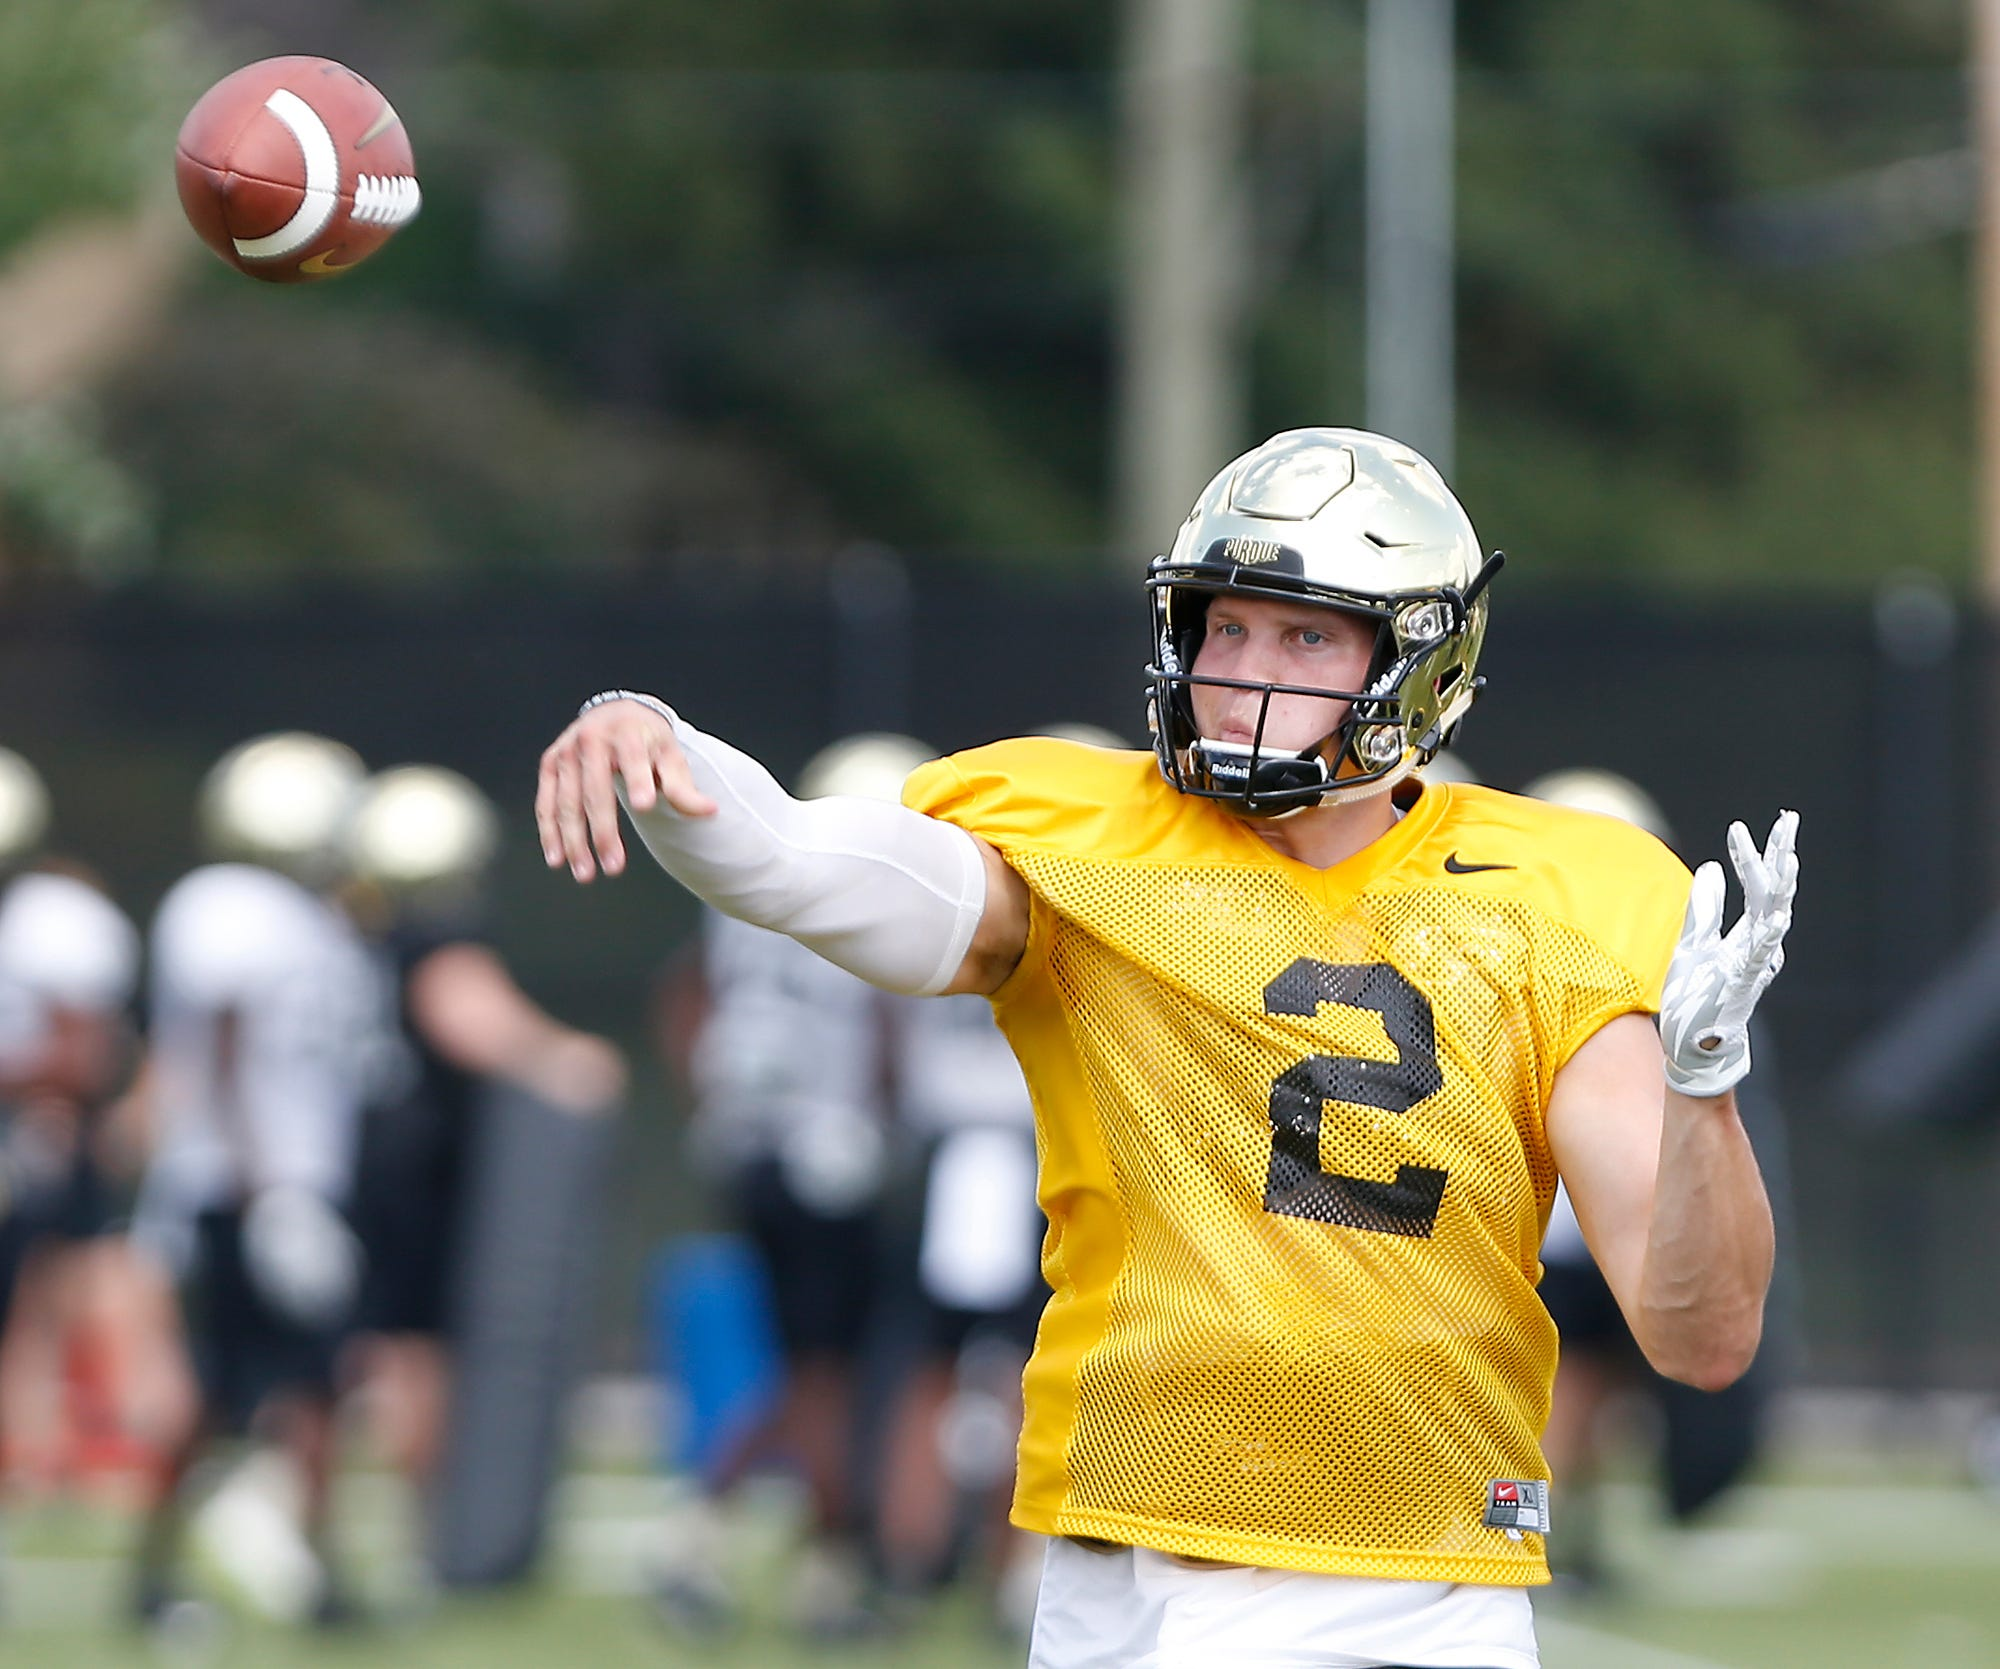 Quarterback Elijah Sindelar with a pass during Purdue football practice Monday, August 27, 2018, in West Lafayette.